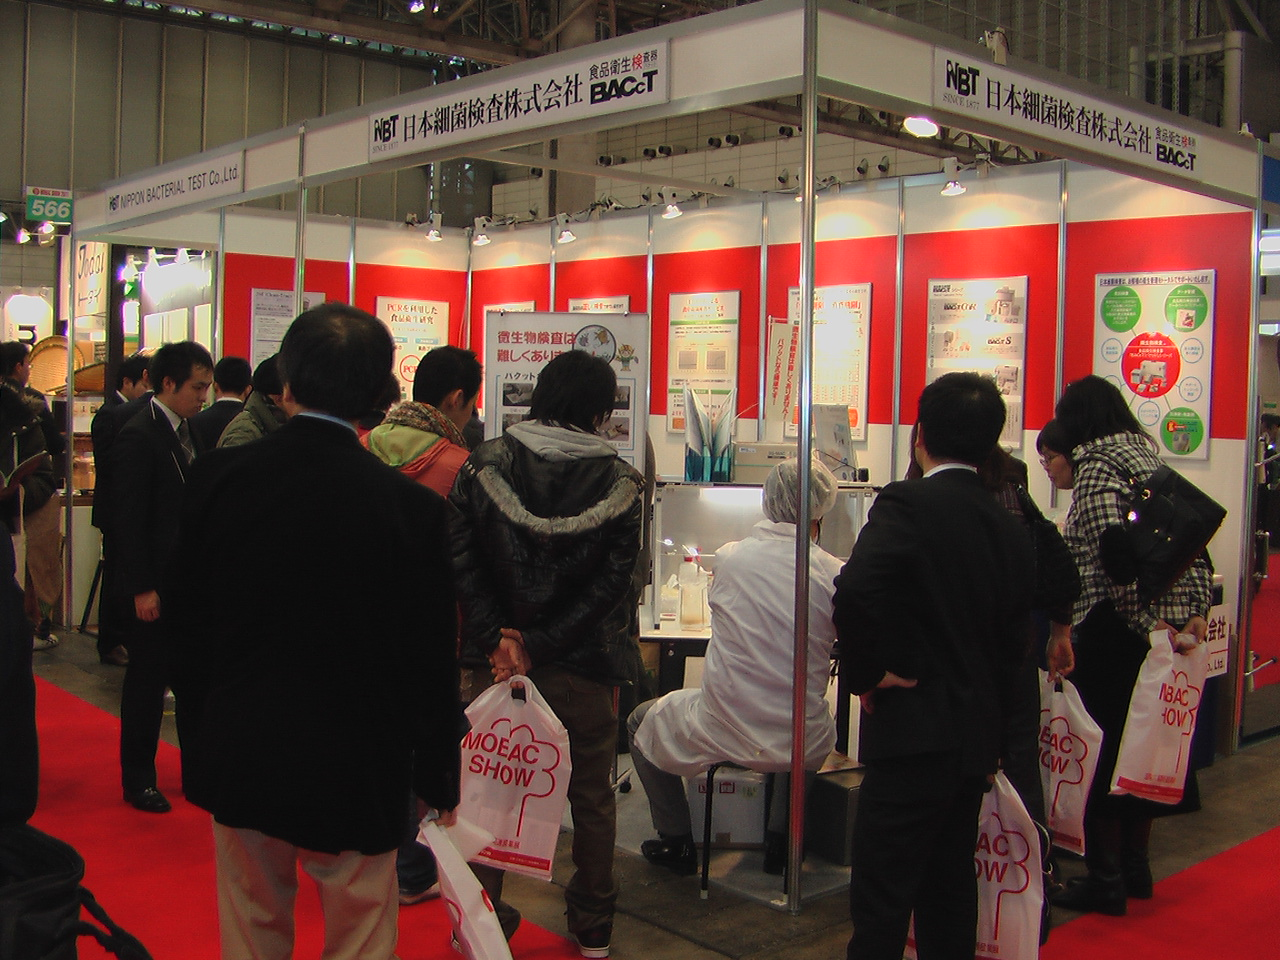 MOBAC SHOW 2011(国際製パン製菓関連産業展)